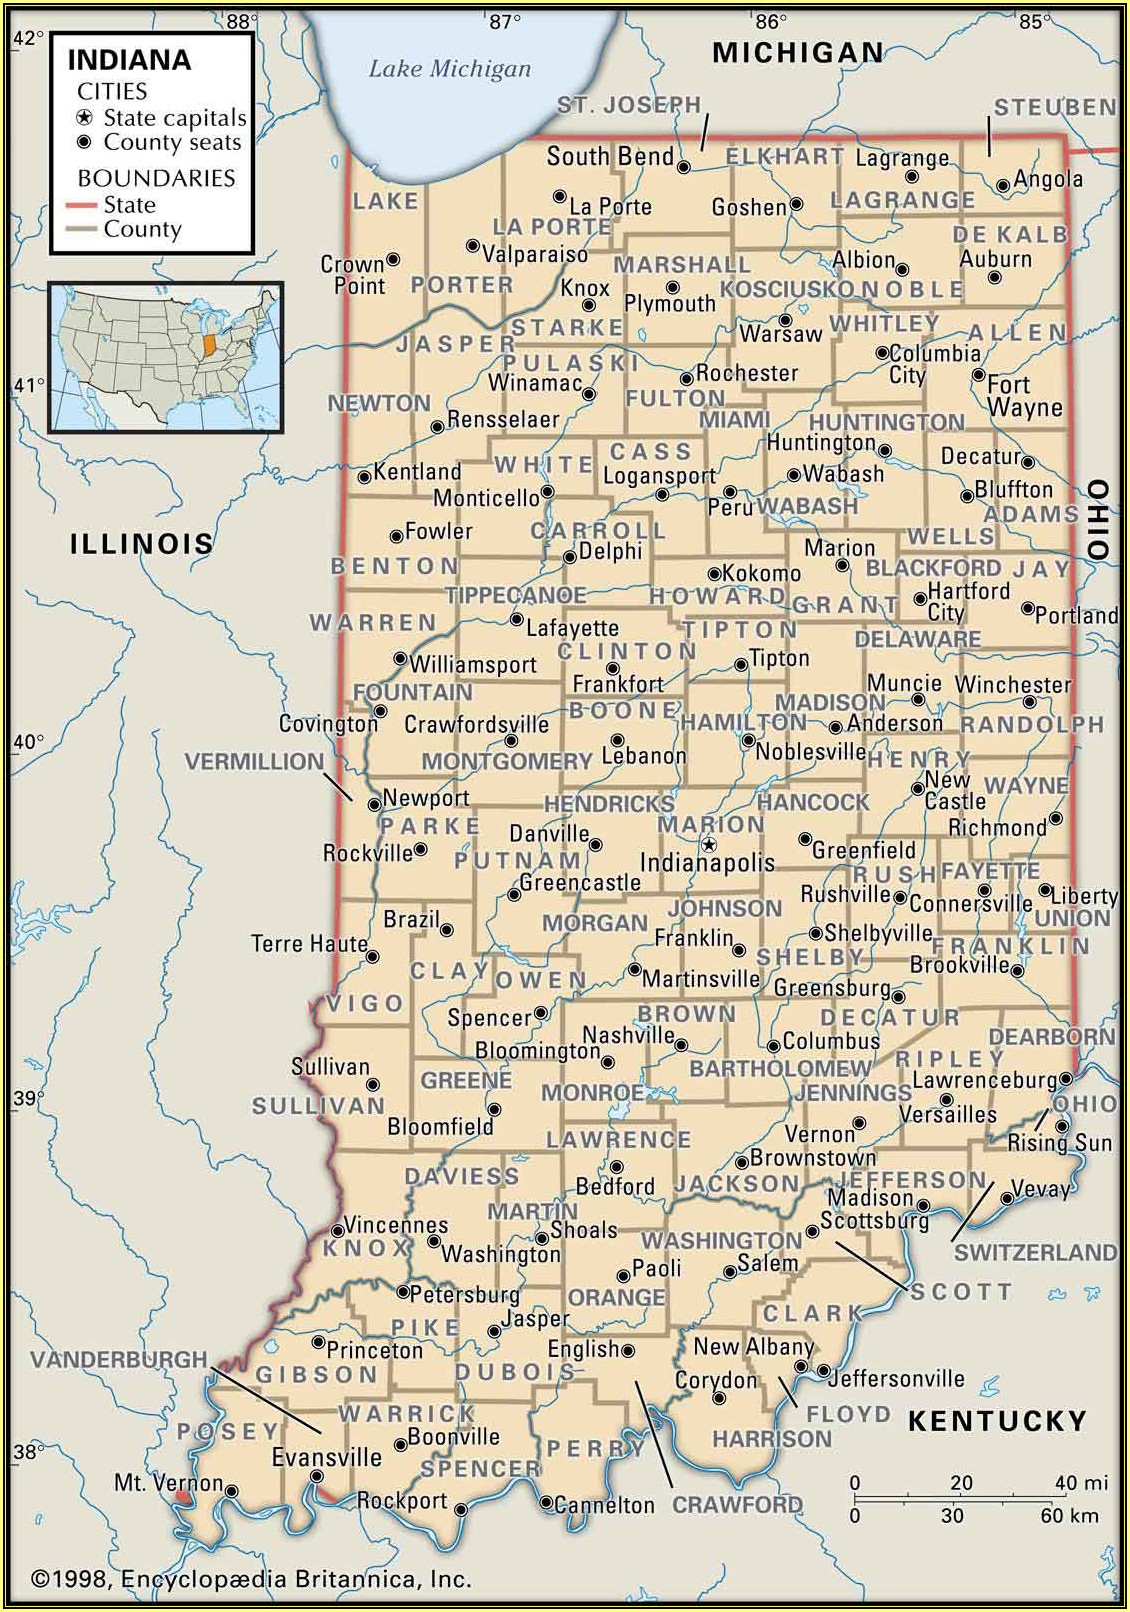 Historic Indiana Highway Maps